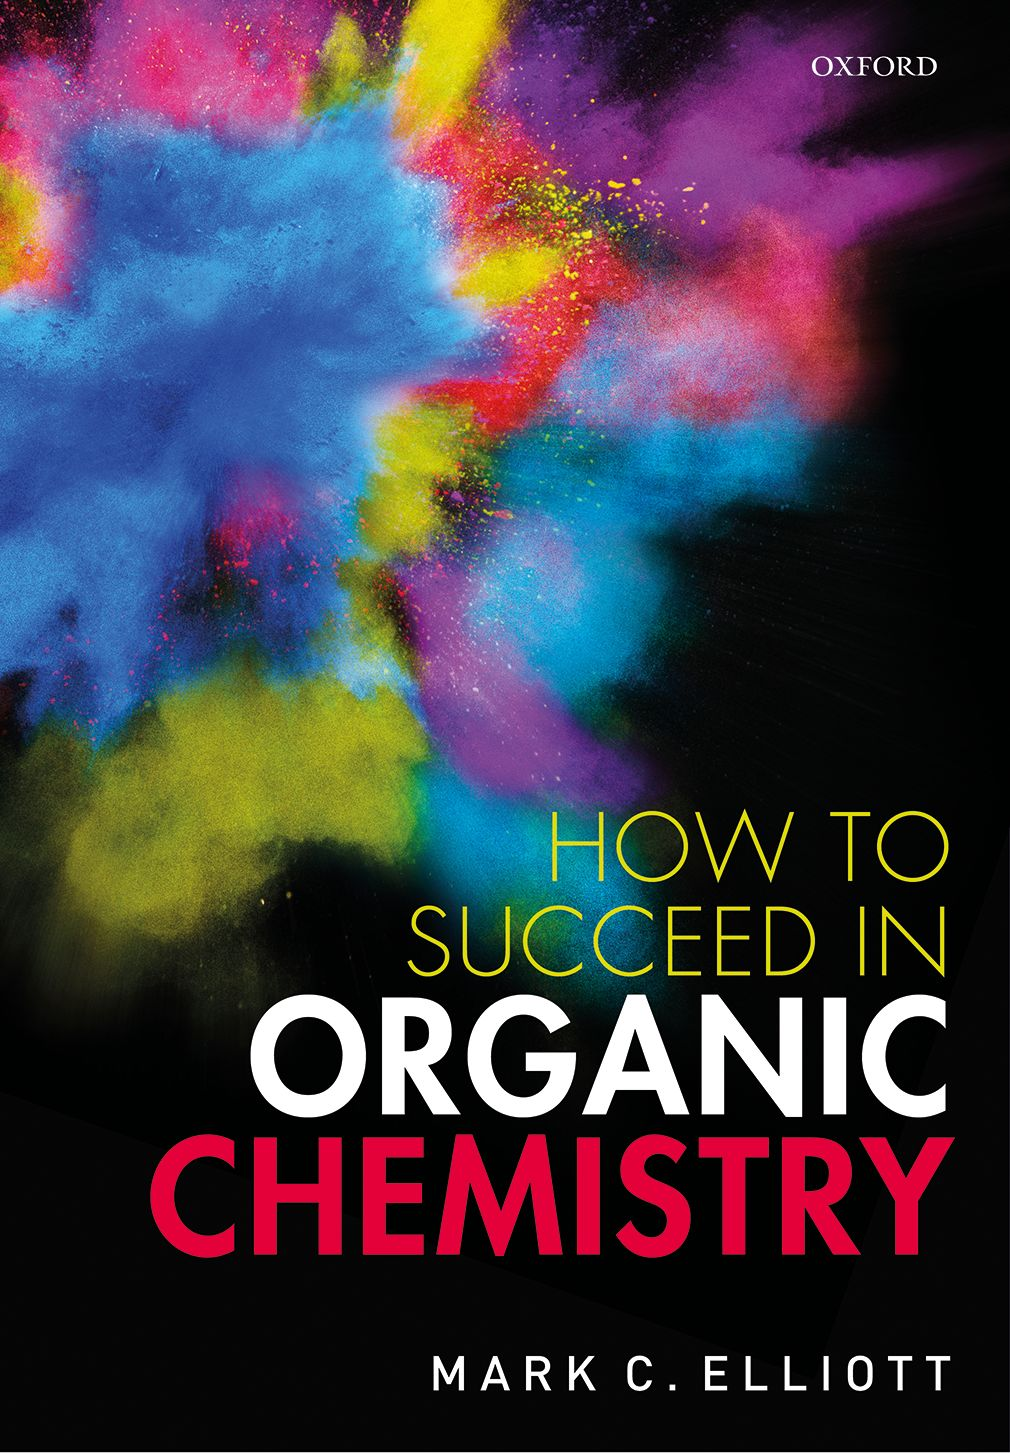 How to Succeed in Organic Chemistry Student Resources